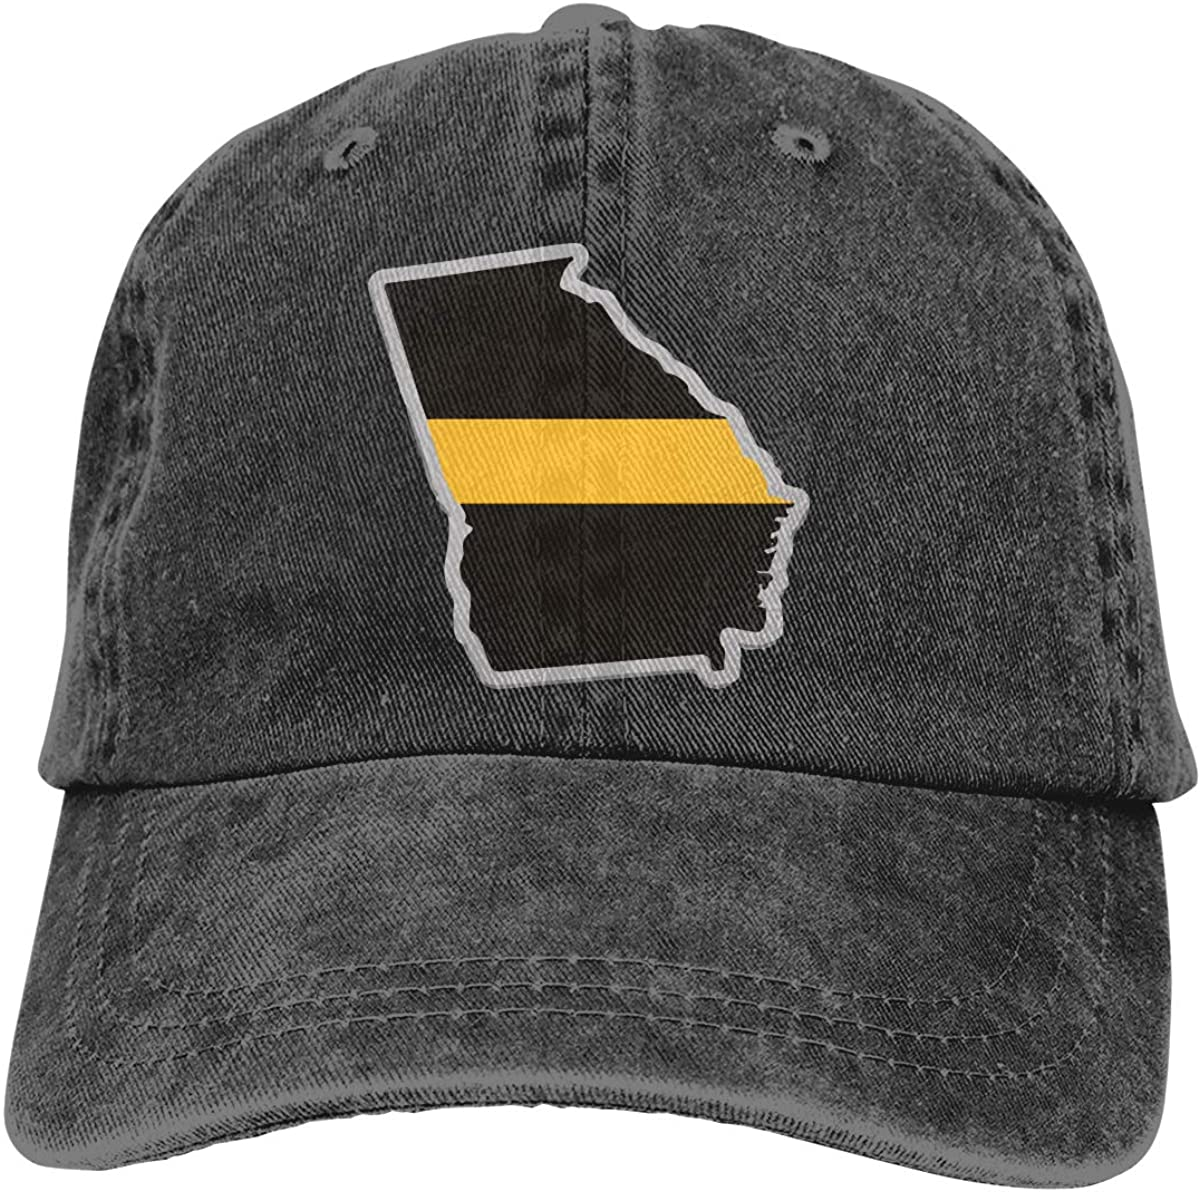 Georgia State Thin Gold Unisex Trendy Cowboy Hat Casquette Adjustable Baseball Cap